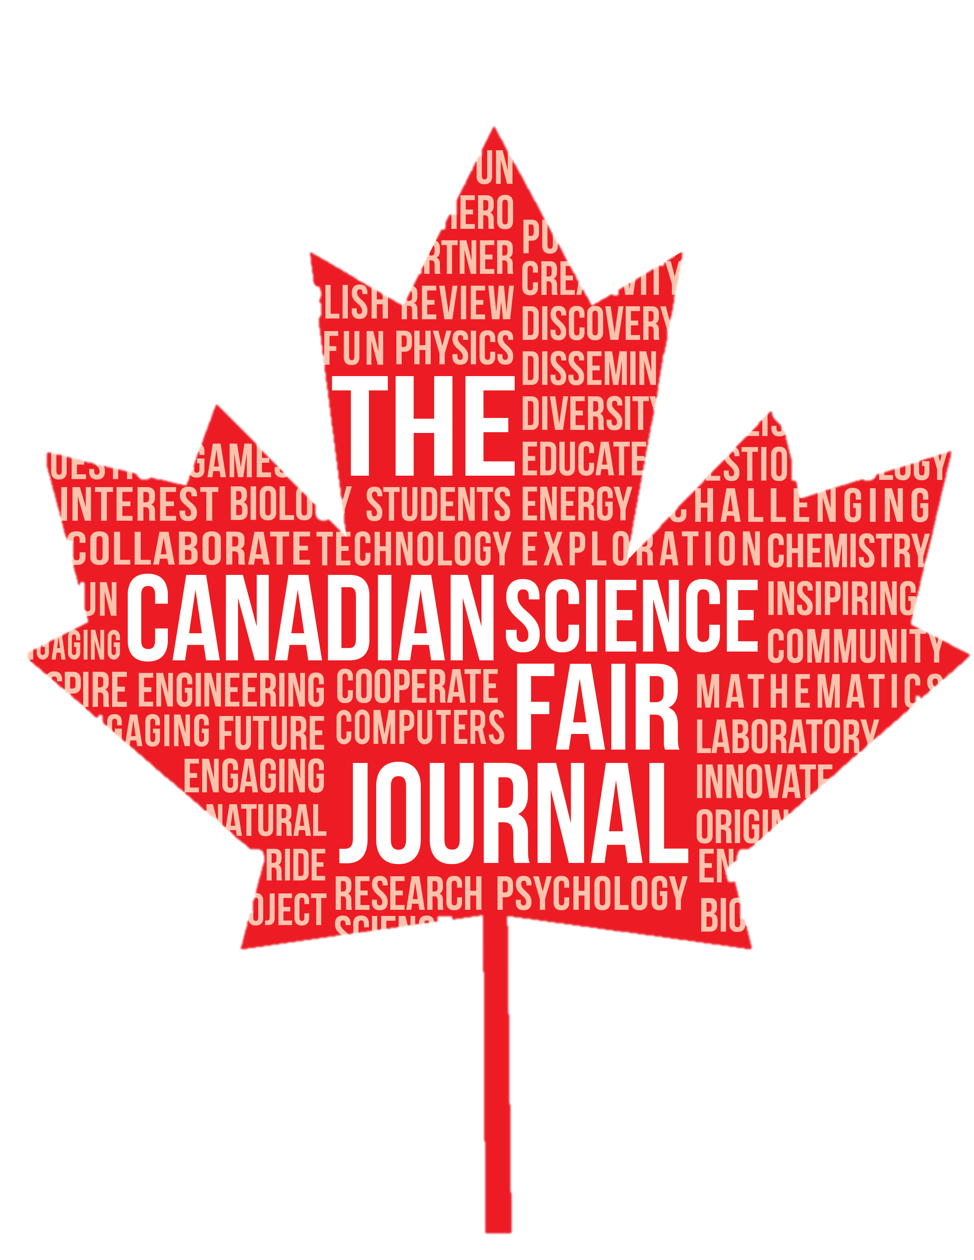 The Canadian Science Fair Journal